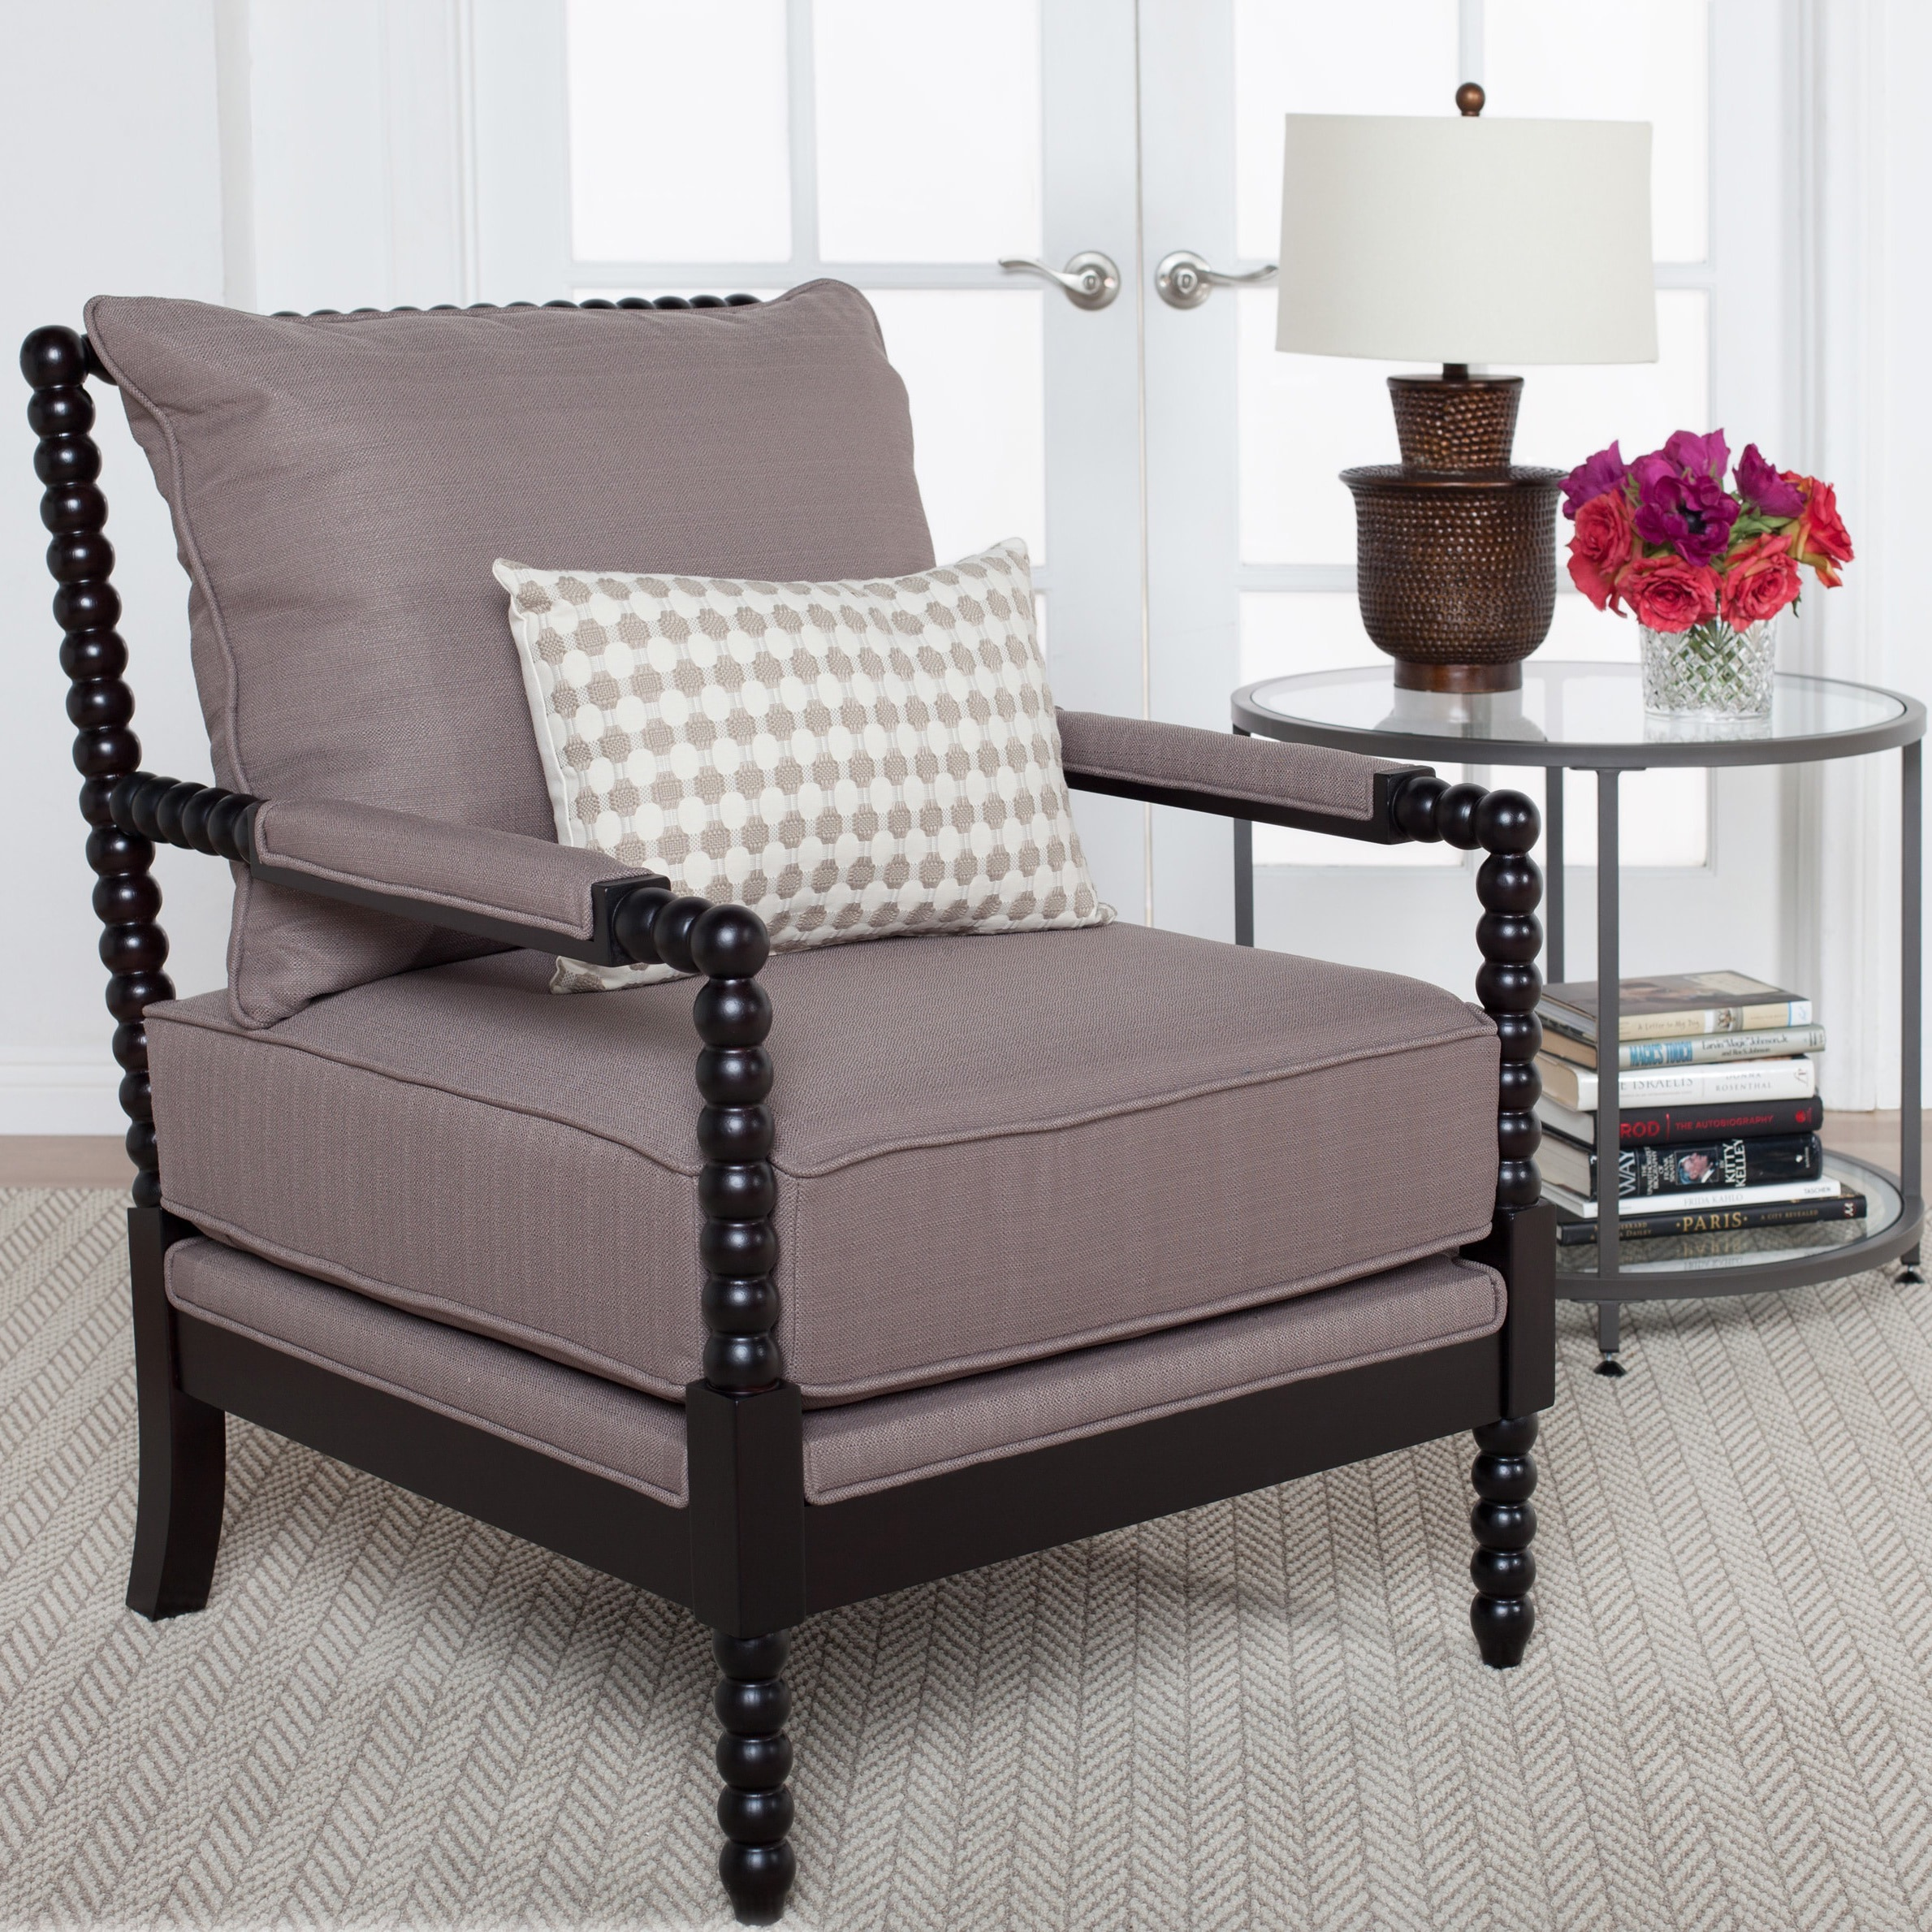 Shop Studio Designs Home Colonnade Spindle Chair - On Sale - Free Shipping Today - Overstock.com - 12069952 & Shop Studio Designs Home Colonnade Spindle Chair - On Sale - Free ...